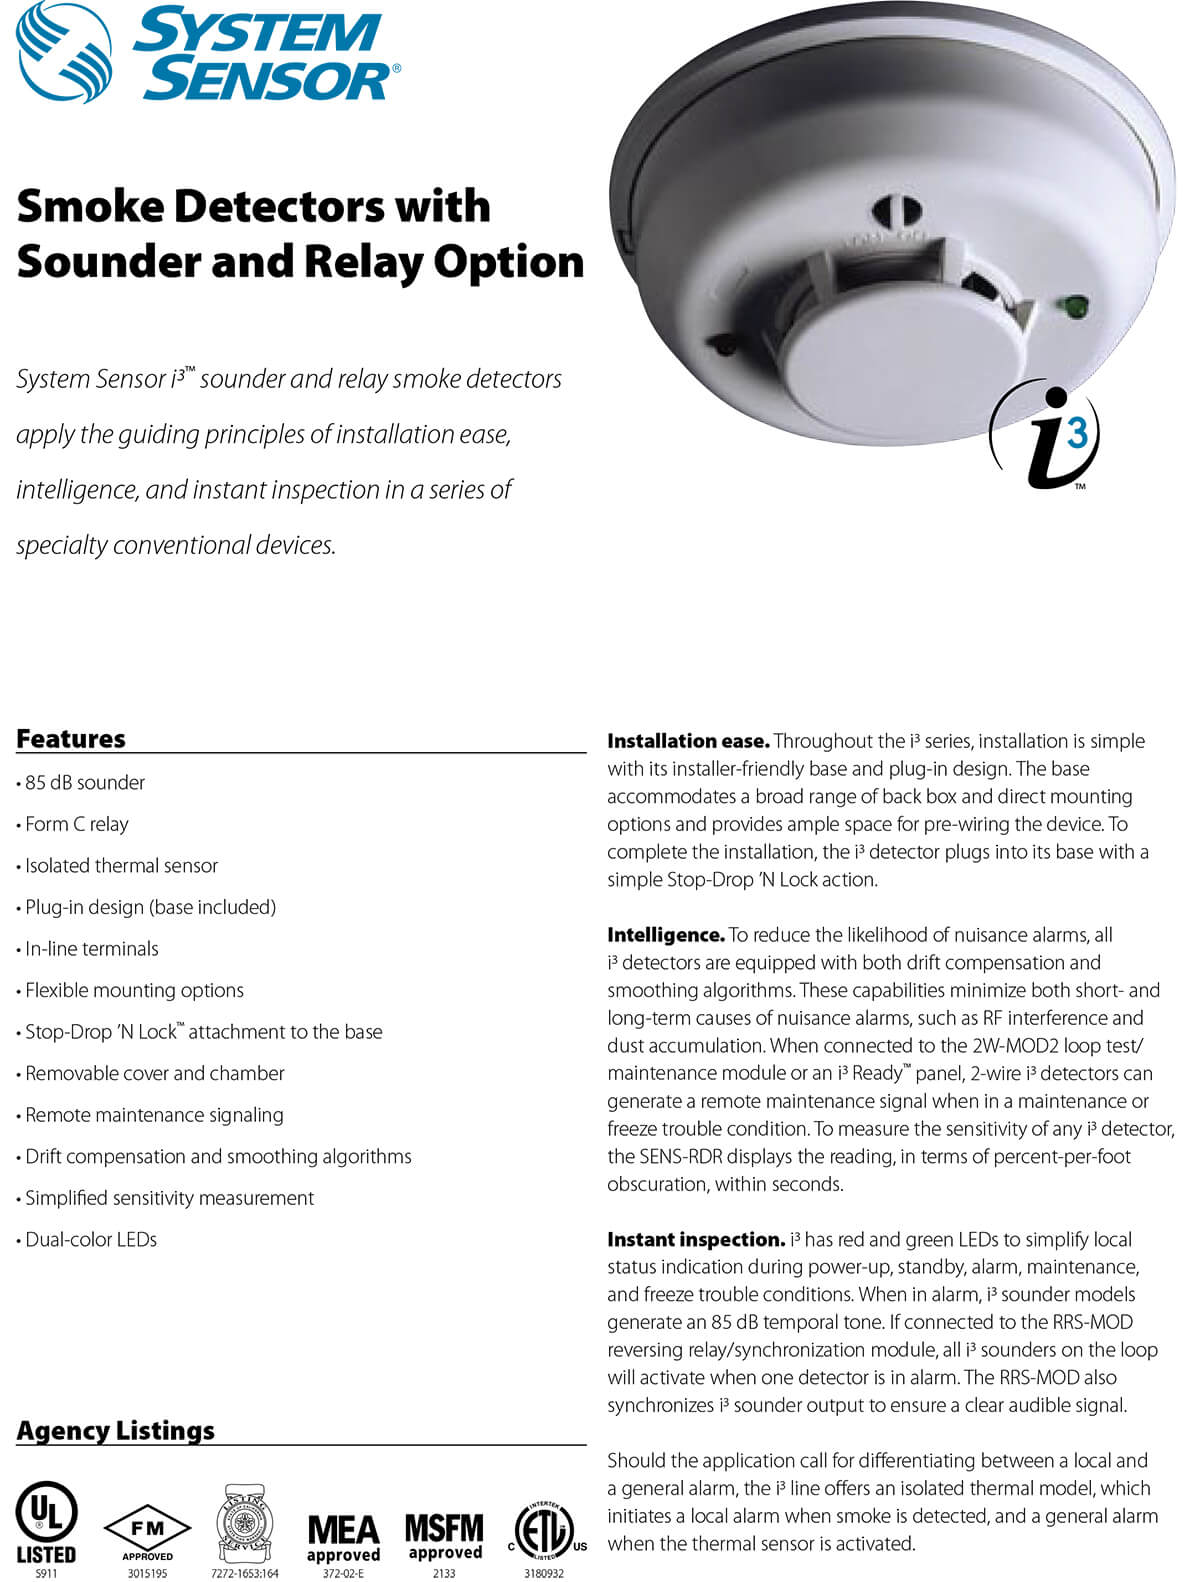 Smoke Detectors with Sounder and Relay Option